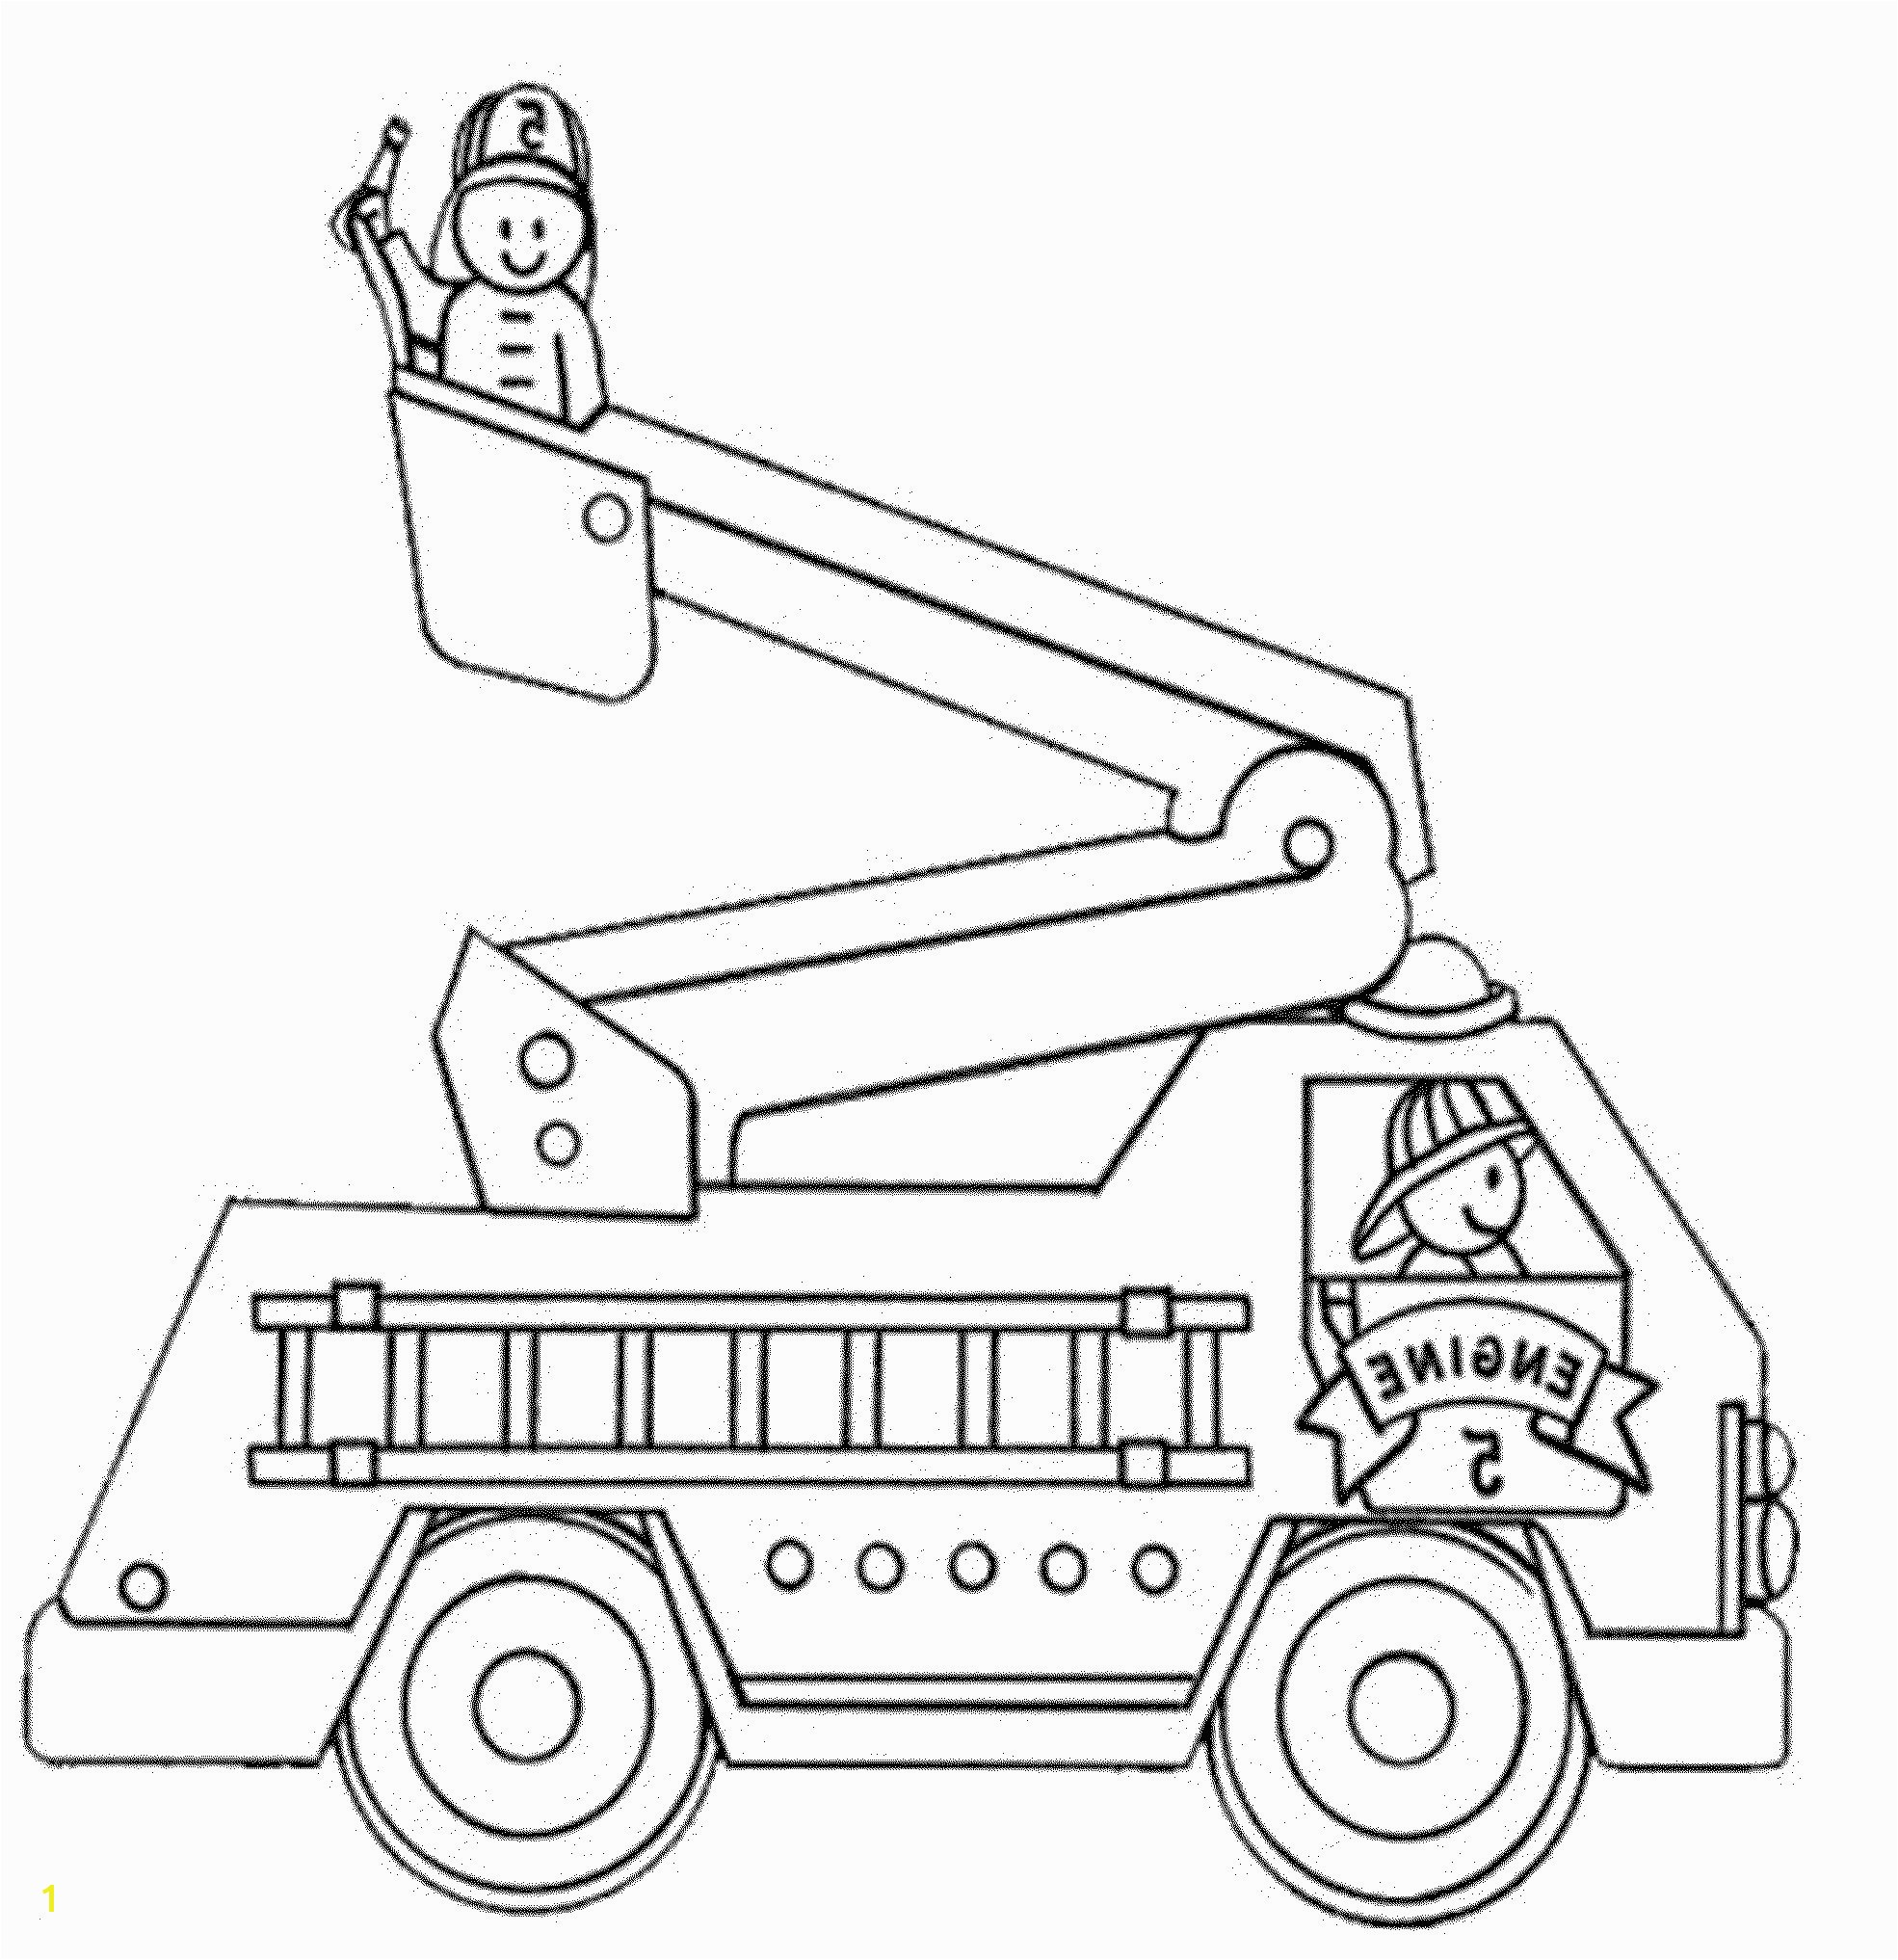 Coloring Page A Fire Truck Brilliant Free Fire Truck Coloringfree Fire Truck Coloring Pages Printable